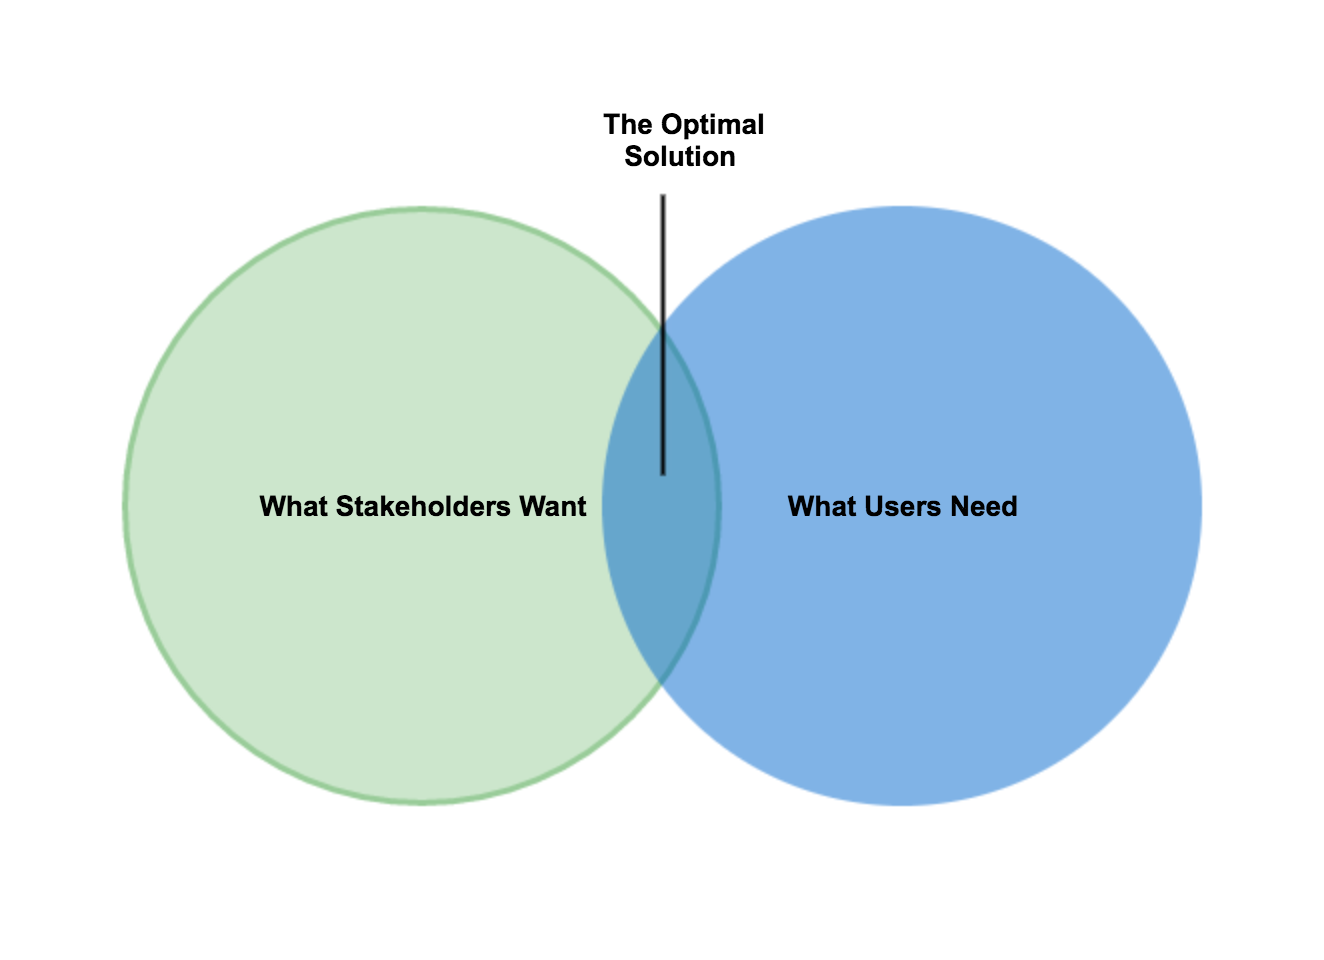 A Venn Diagram with The Optimal Solution between What Stakeholder Want and What Users Need.